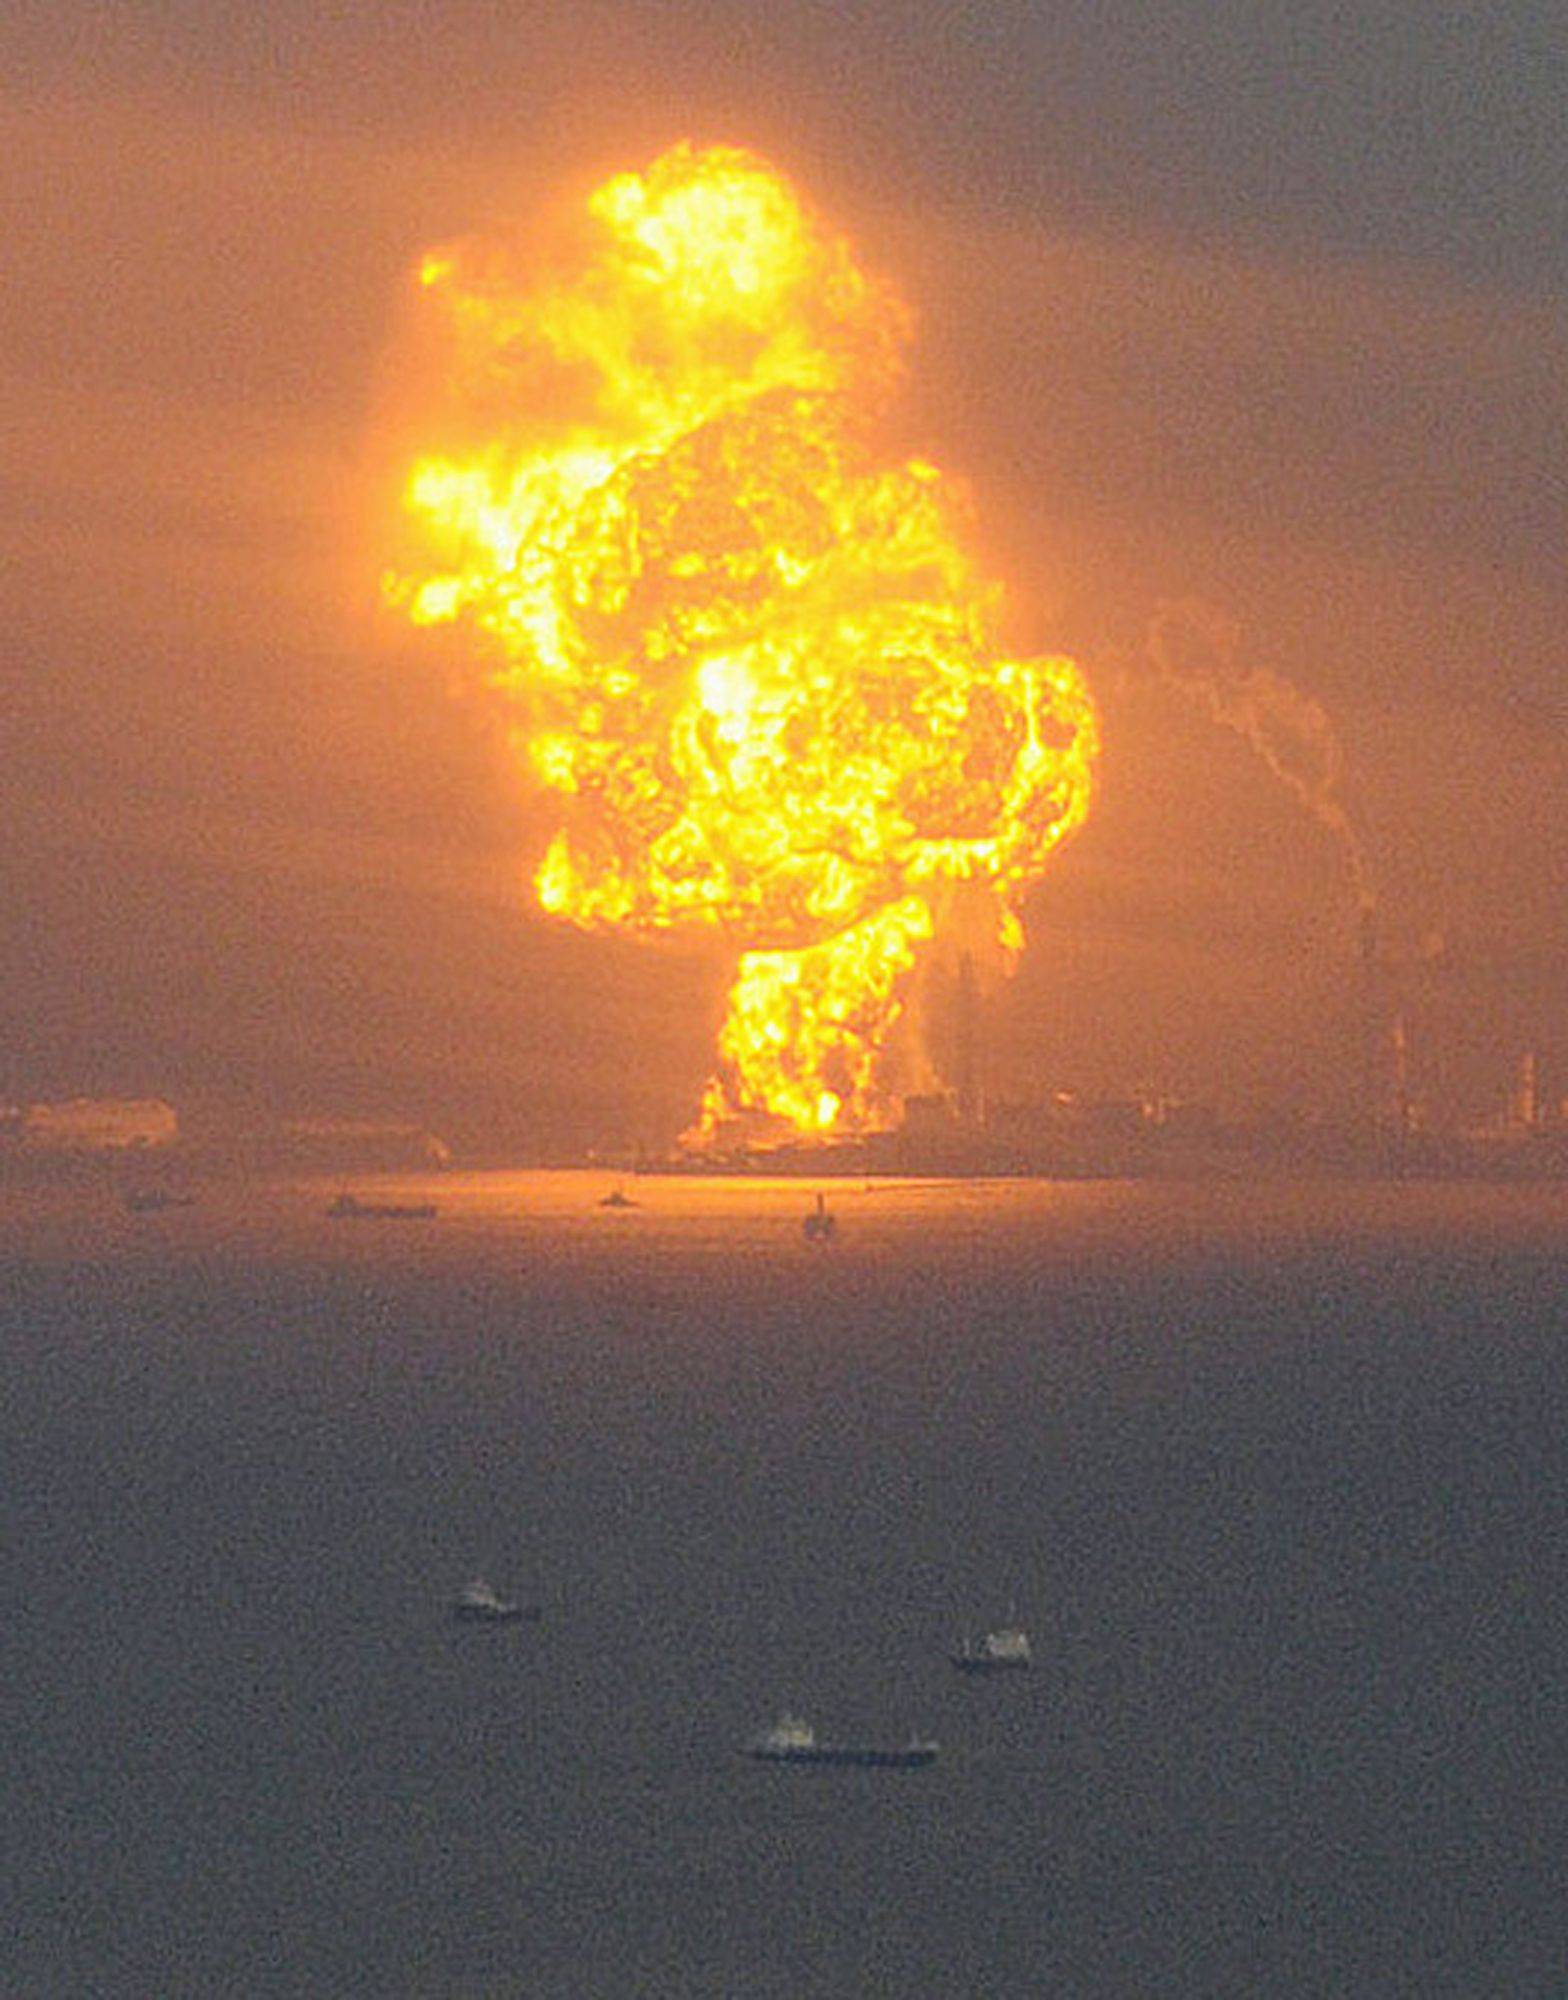 Flames rise from an oil refinery after a powerful earthquake in Ichihara, Chiba prefecture (state), Japan.